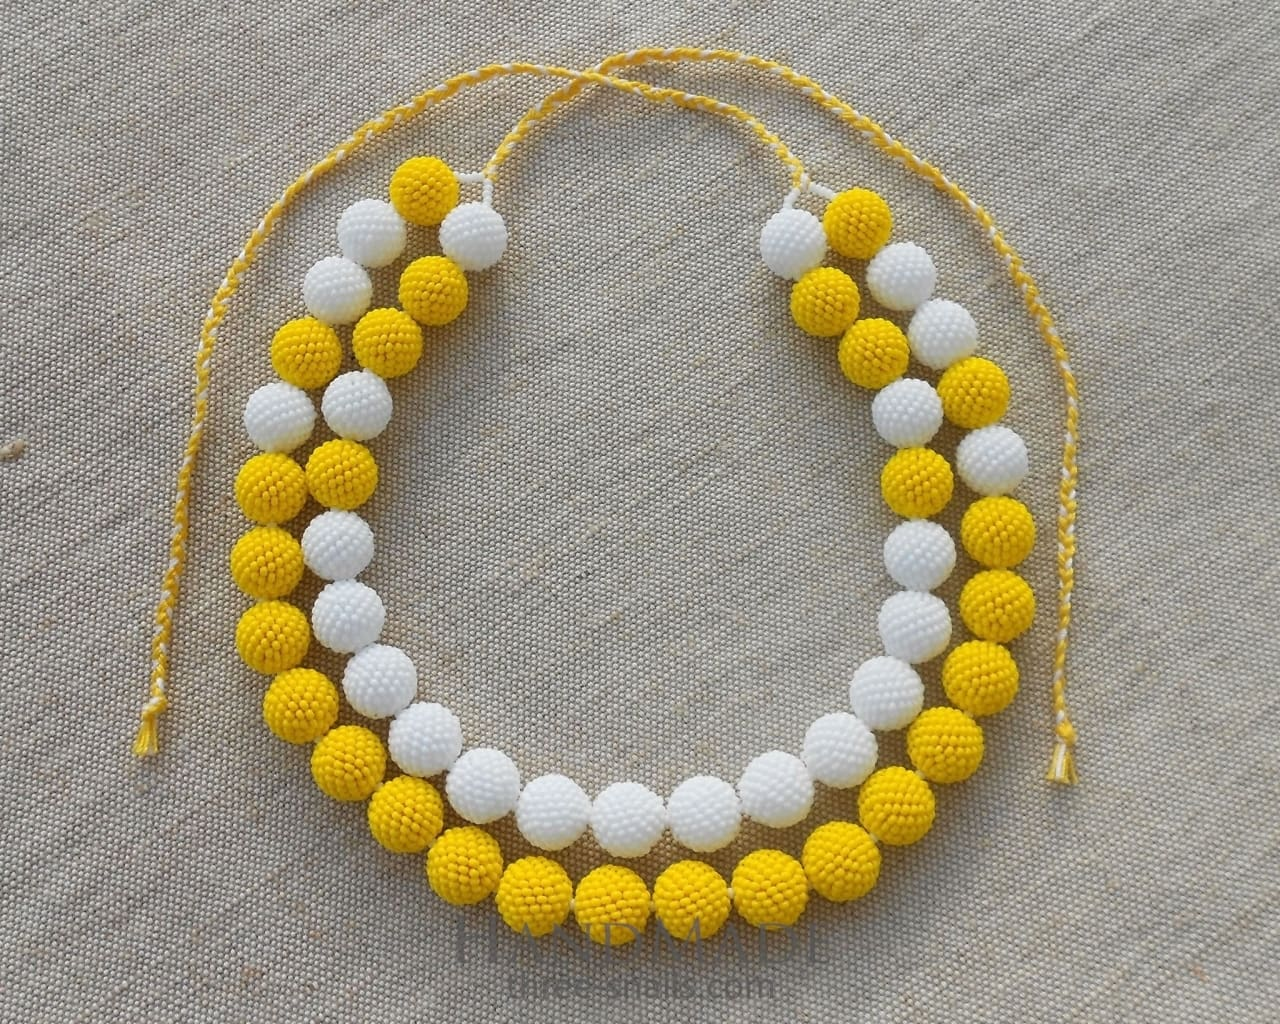 Costume Jewelry Necklaces Sunny - Melnichenko1